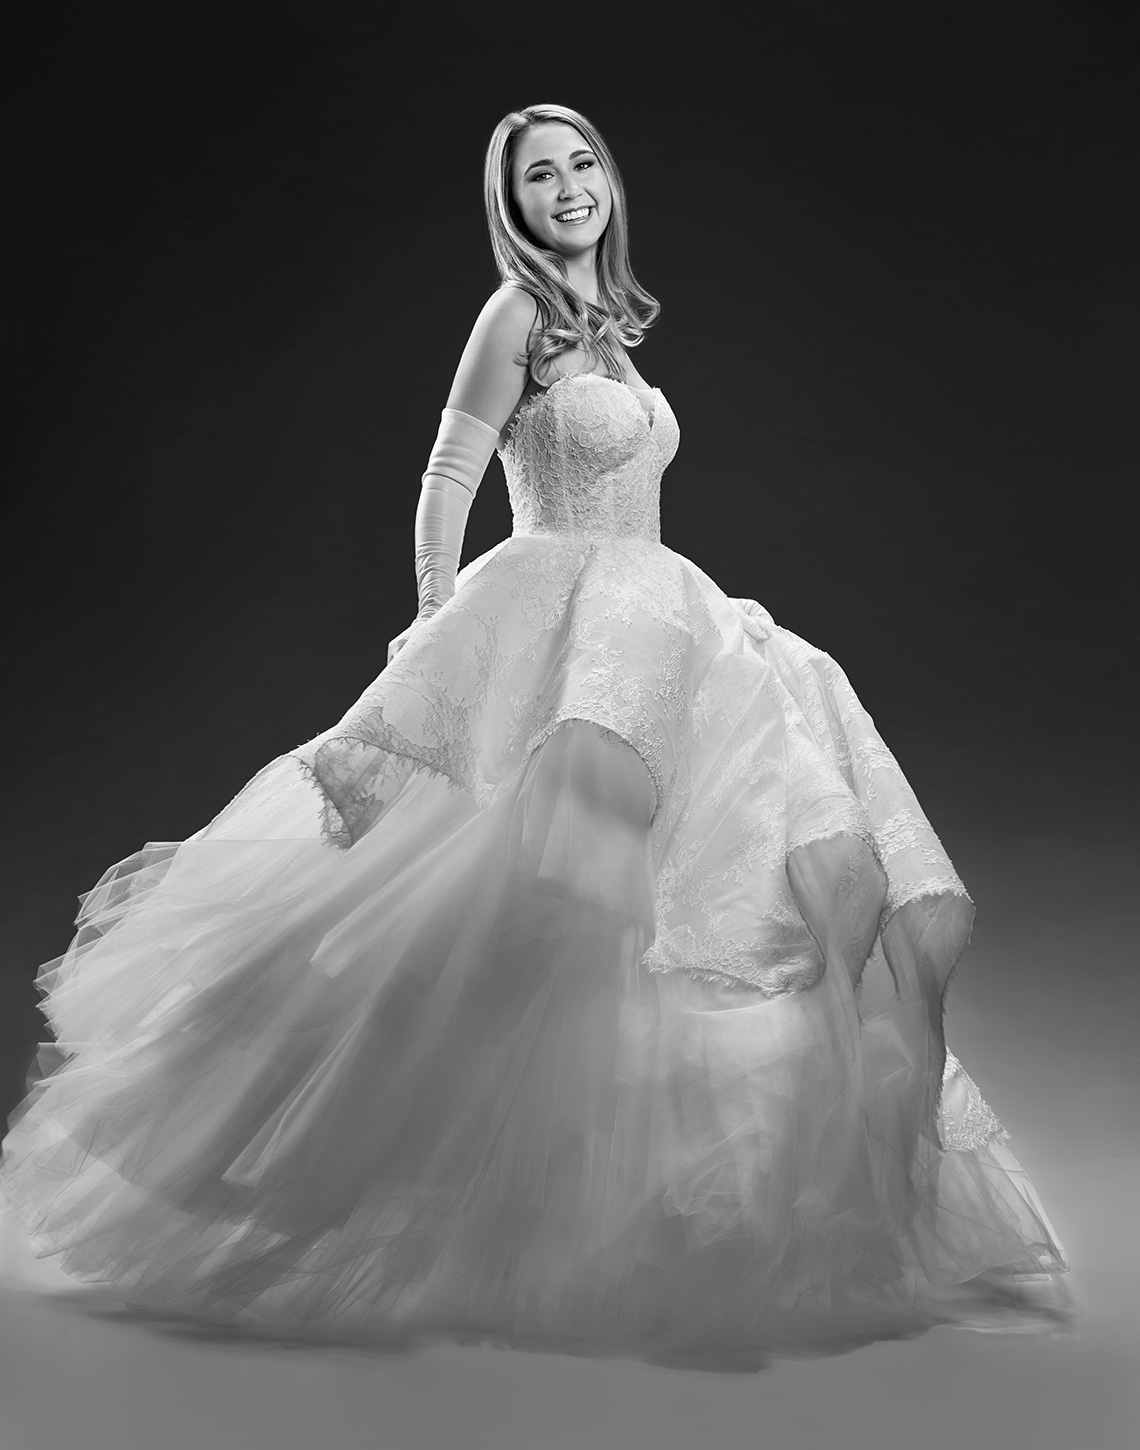 International debutant portrait of a girl swirling in her beautiful gown by John Derryberry